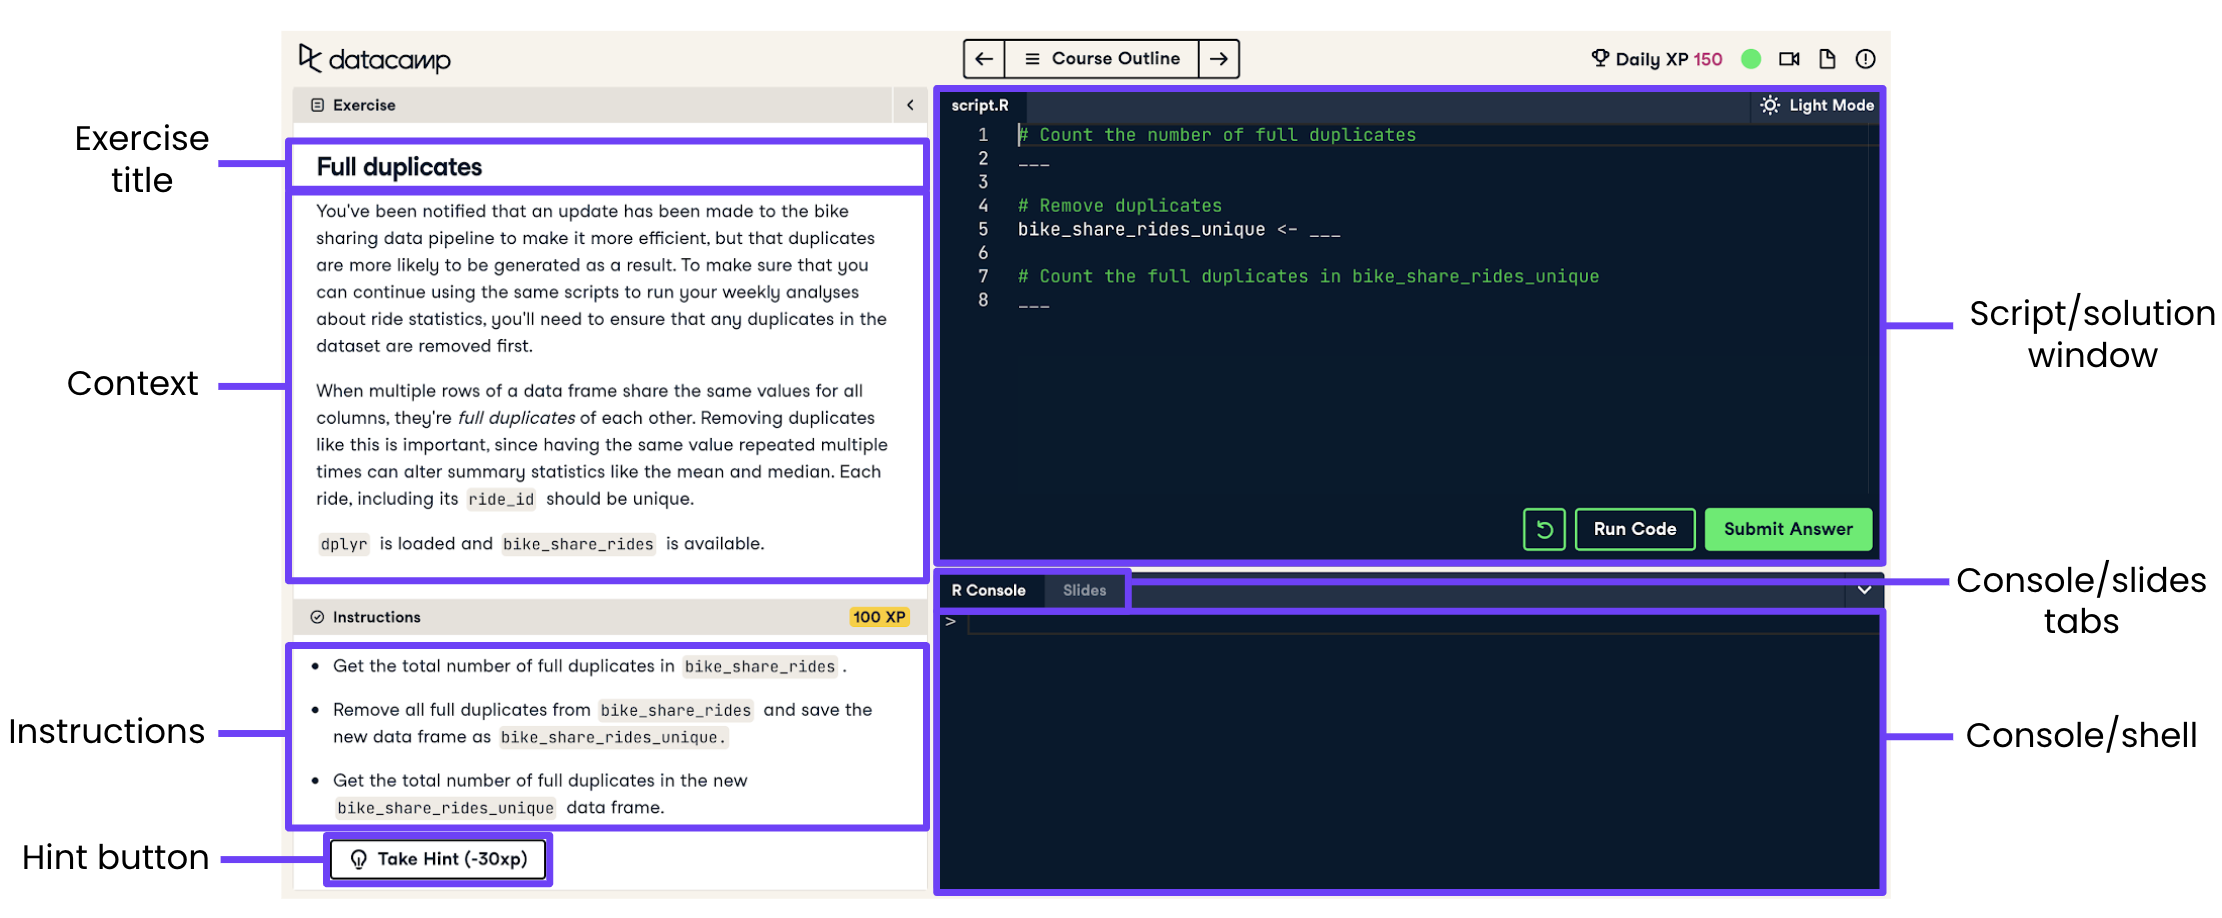 Screenshot of a coding exercise with the title, context, instructions, hint button, script/solution window, console/slides tabs, and console/shell labeled.